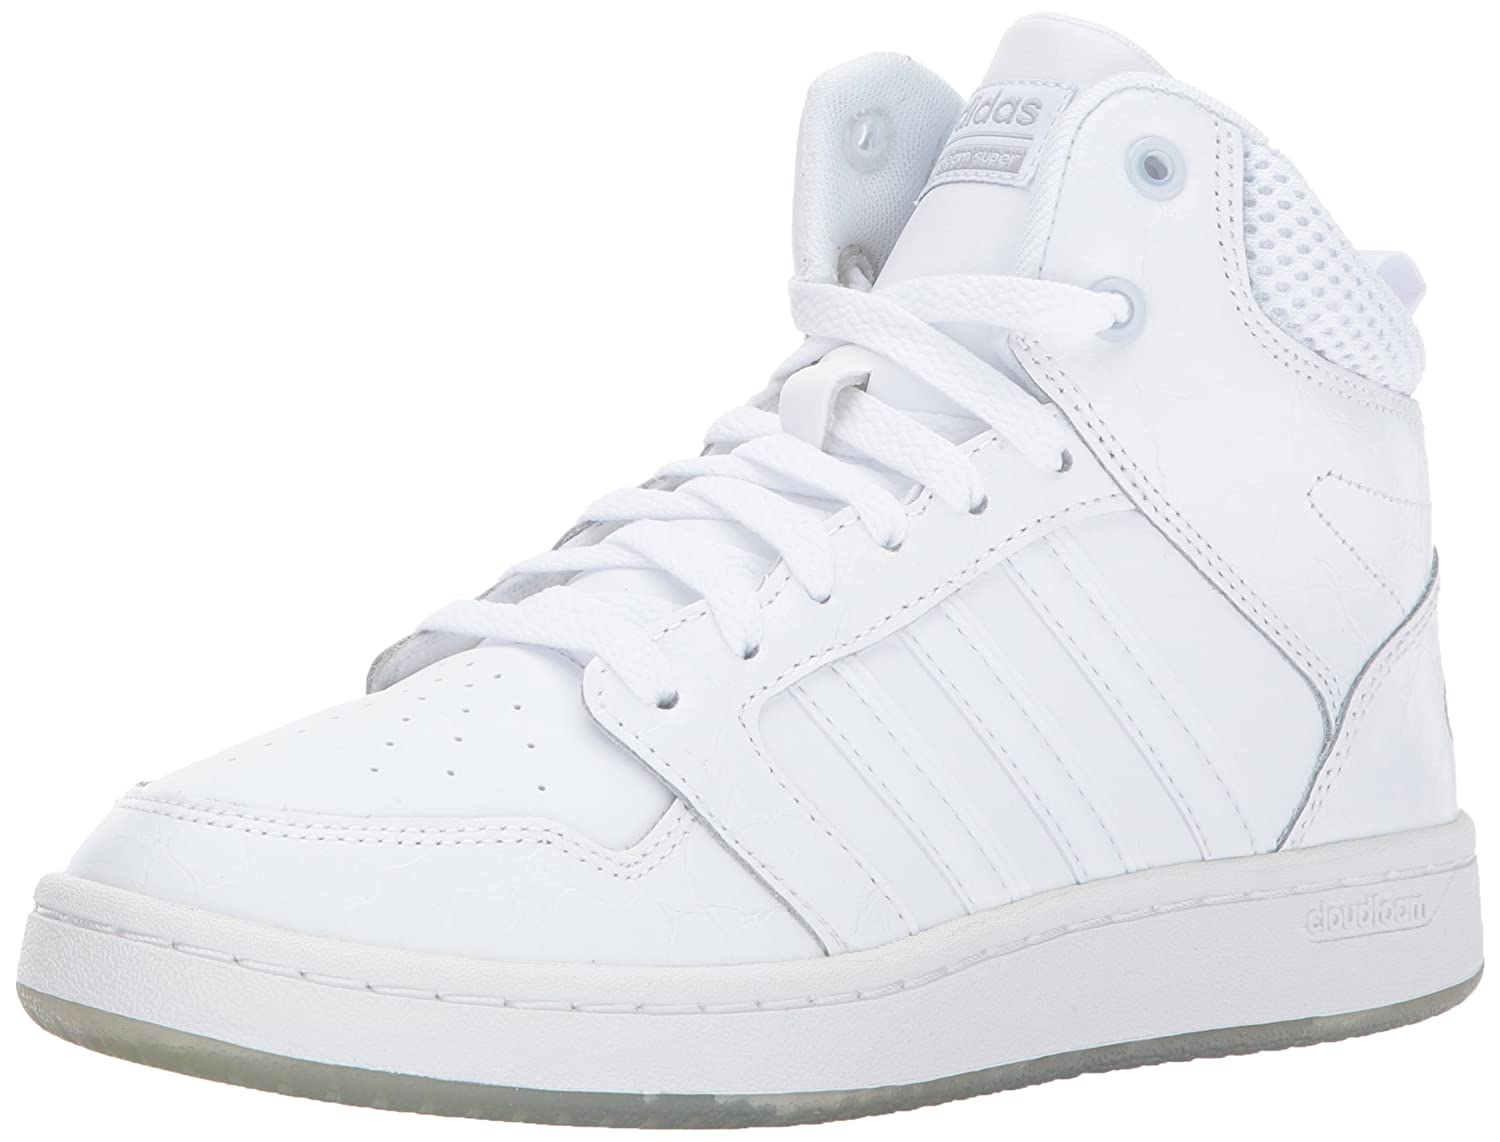 85%OFF adidas NEO Women's CF Superhoops Mid W Basketball